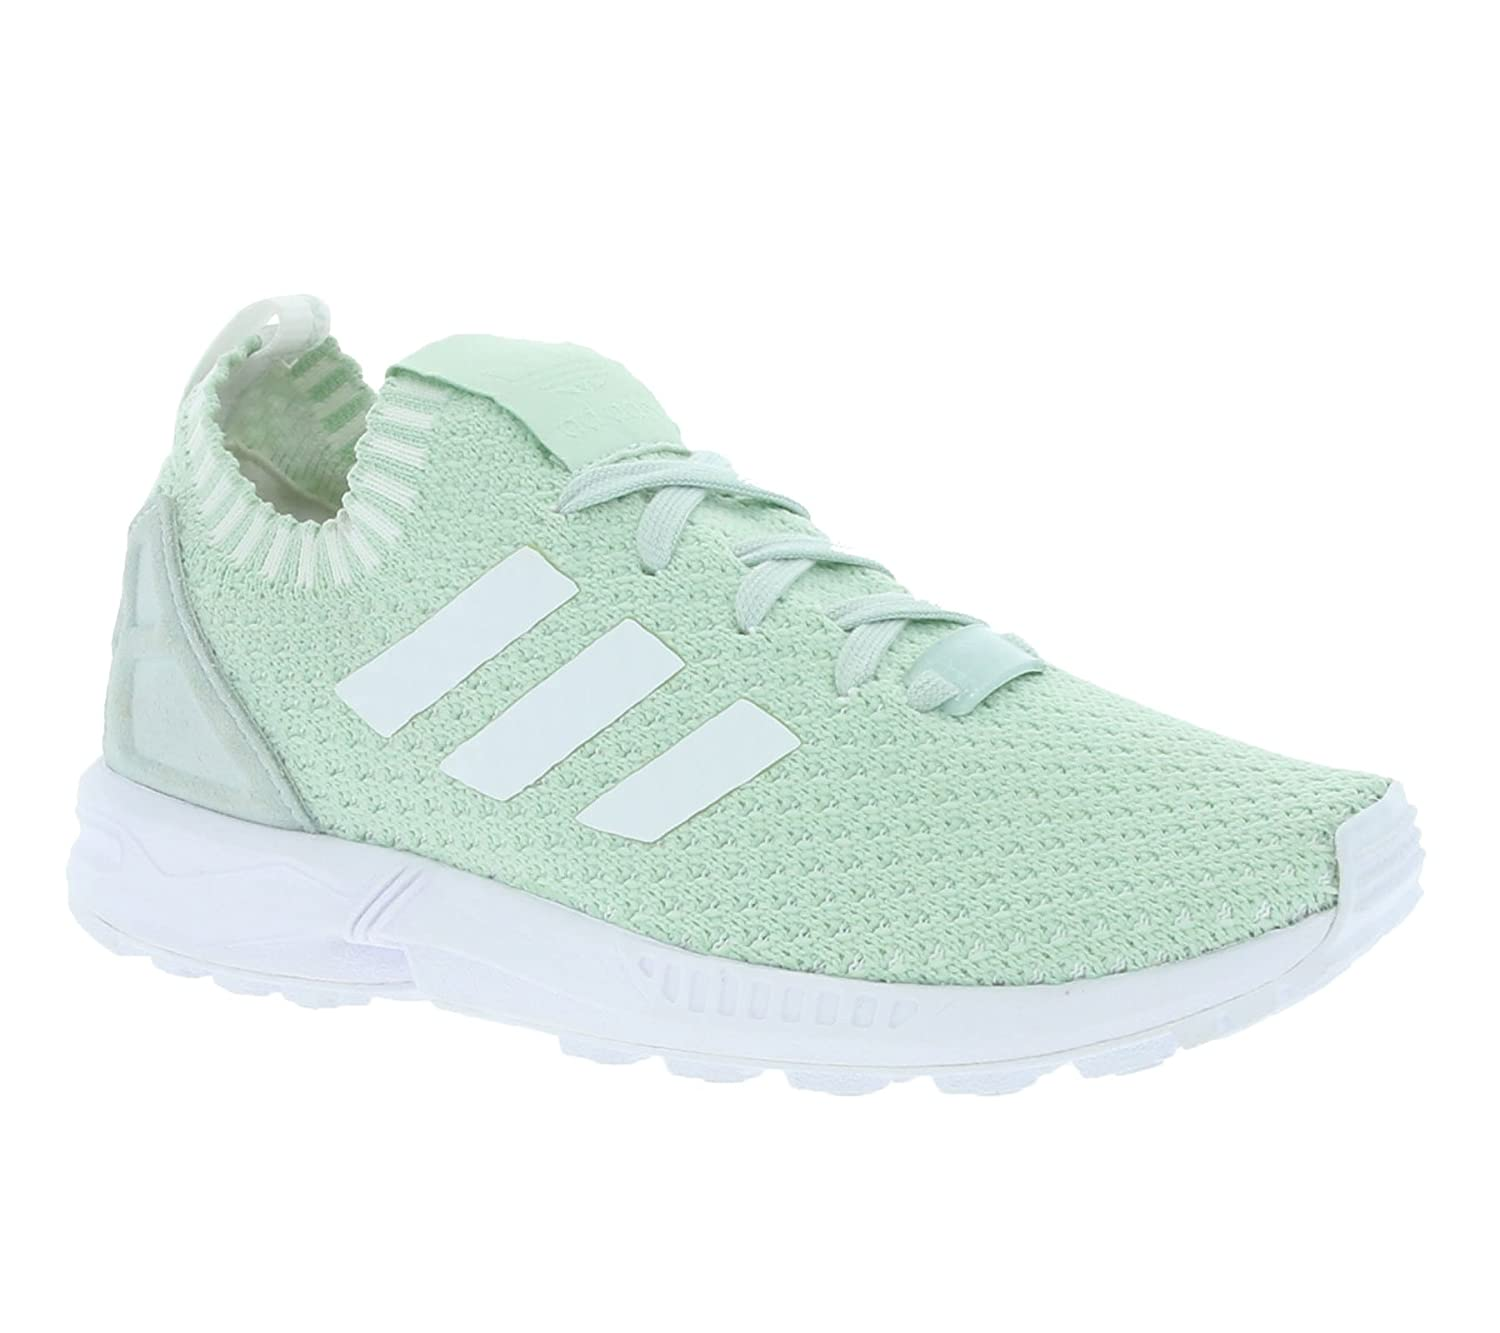 big sale 06f3a 9532f adidas Womens Originals Zx Flux Primeknit Trainers in Vapor ...